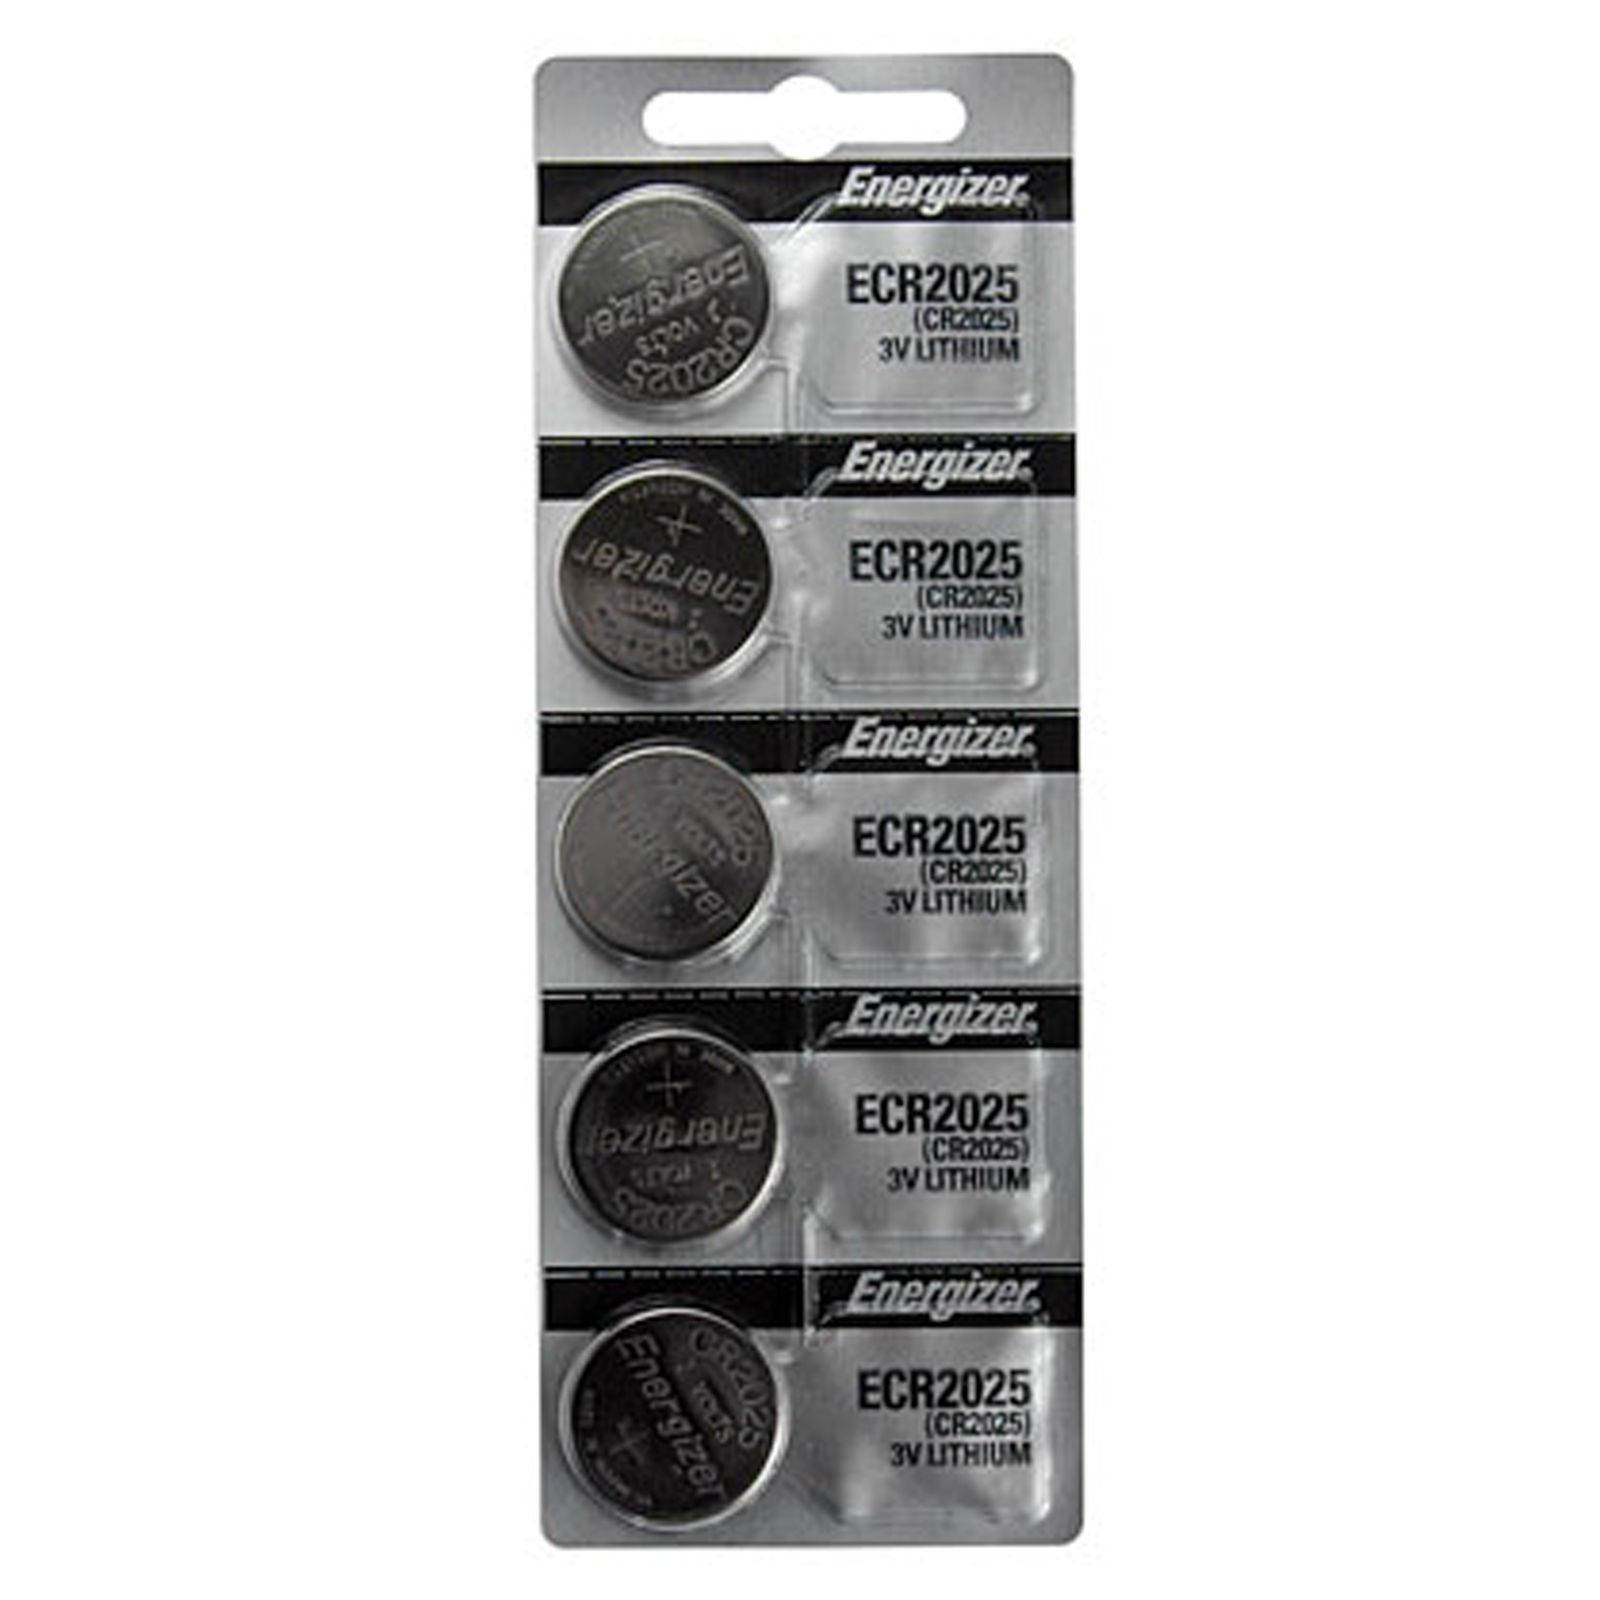 Cr2025 Energizer Lithium Batteries 1 Pack Of 5 Energizer Button Cell Energizer Battery